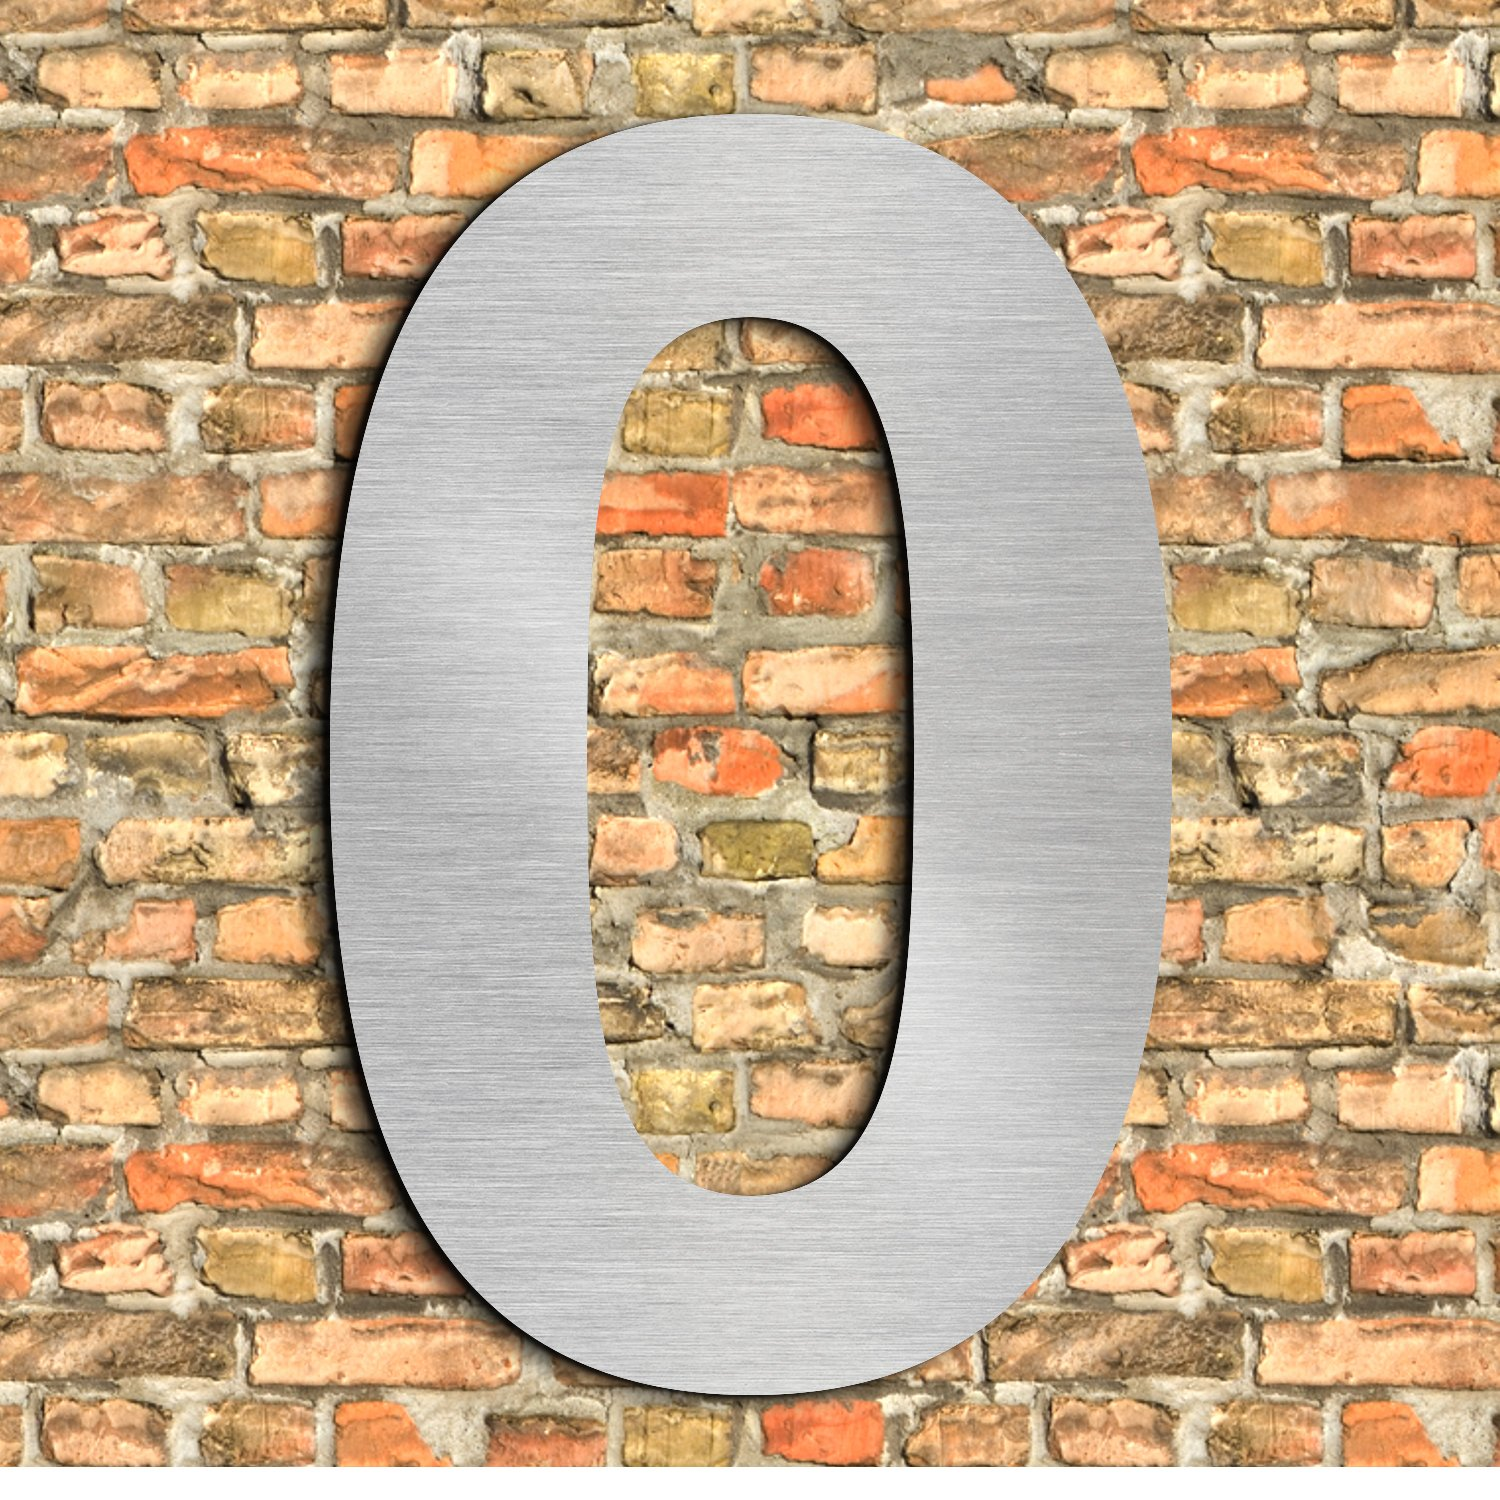 Brushed House Number 2 Two-25.4cm 10in-Made of Solid 304 Stainless Steel ,Floating Appearance,Easy to Install Lanewell